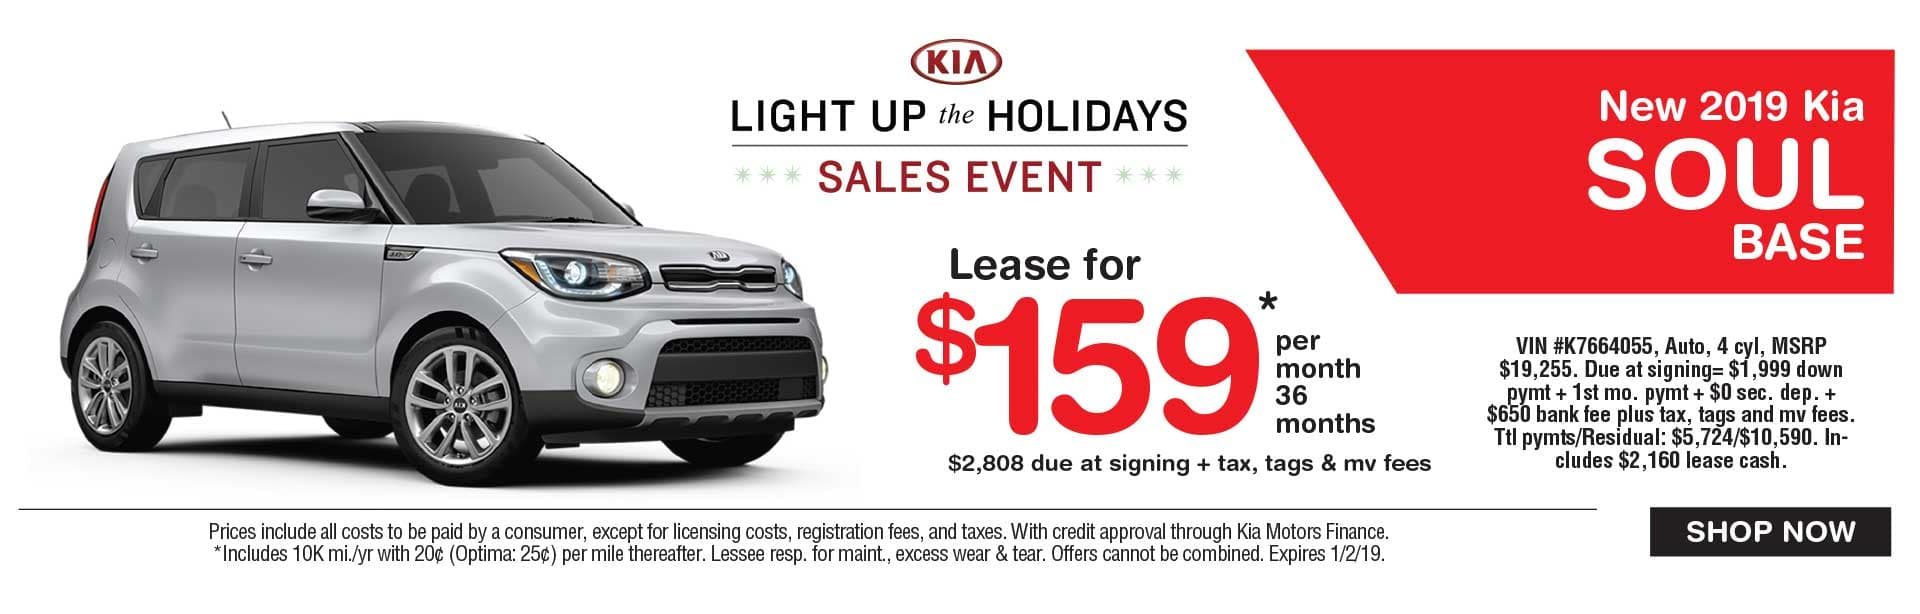 Kia Soul lease savings at Global Kia